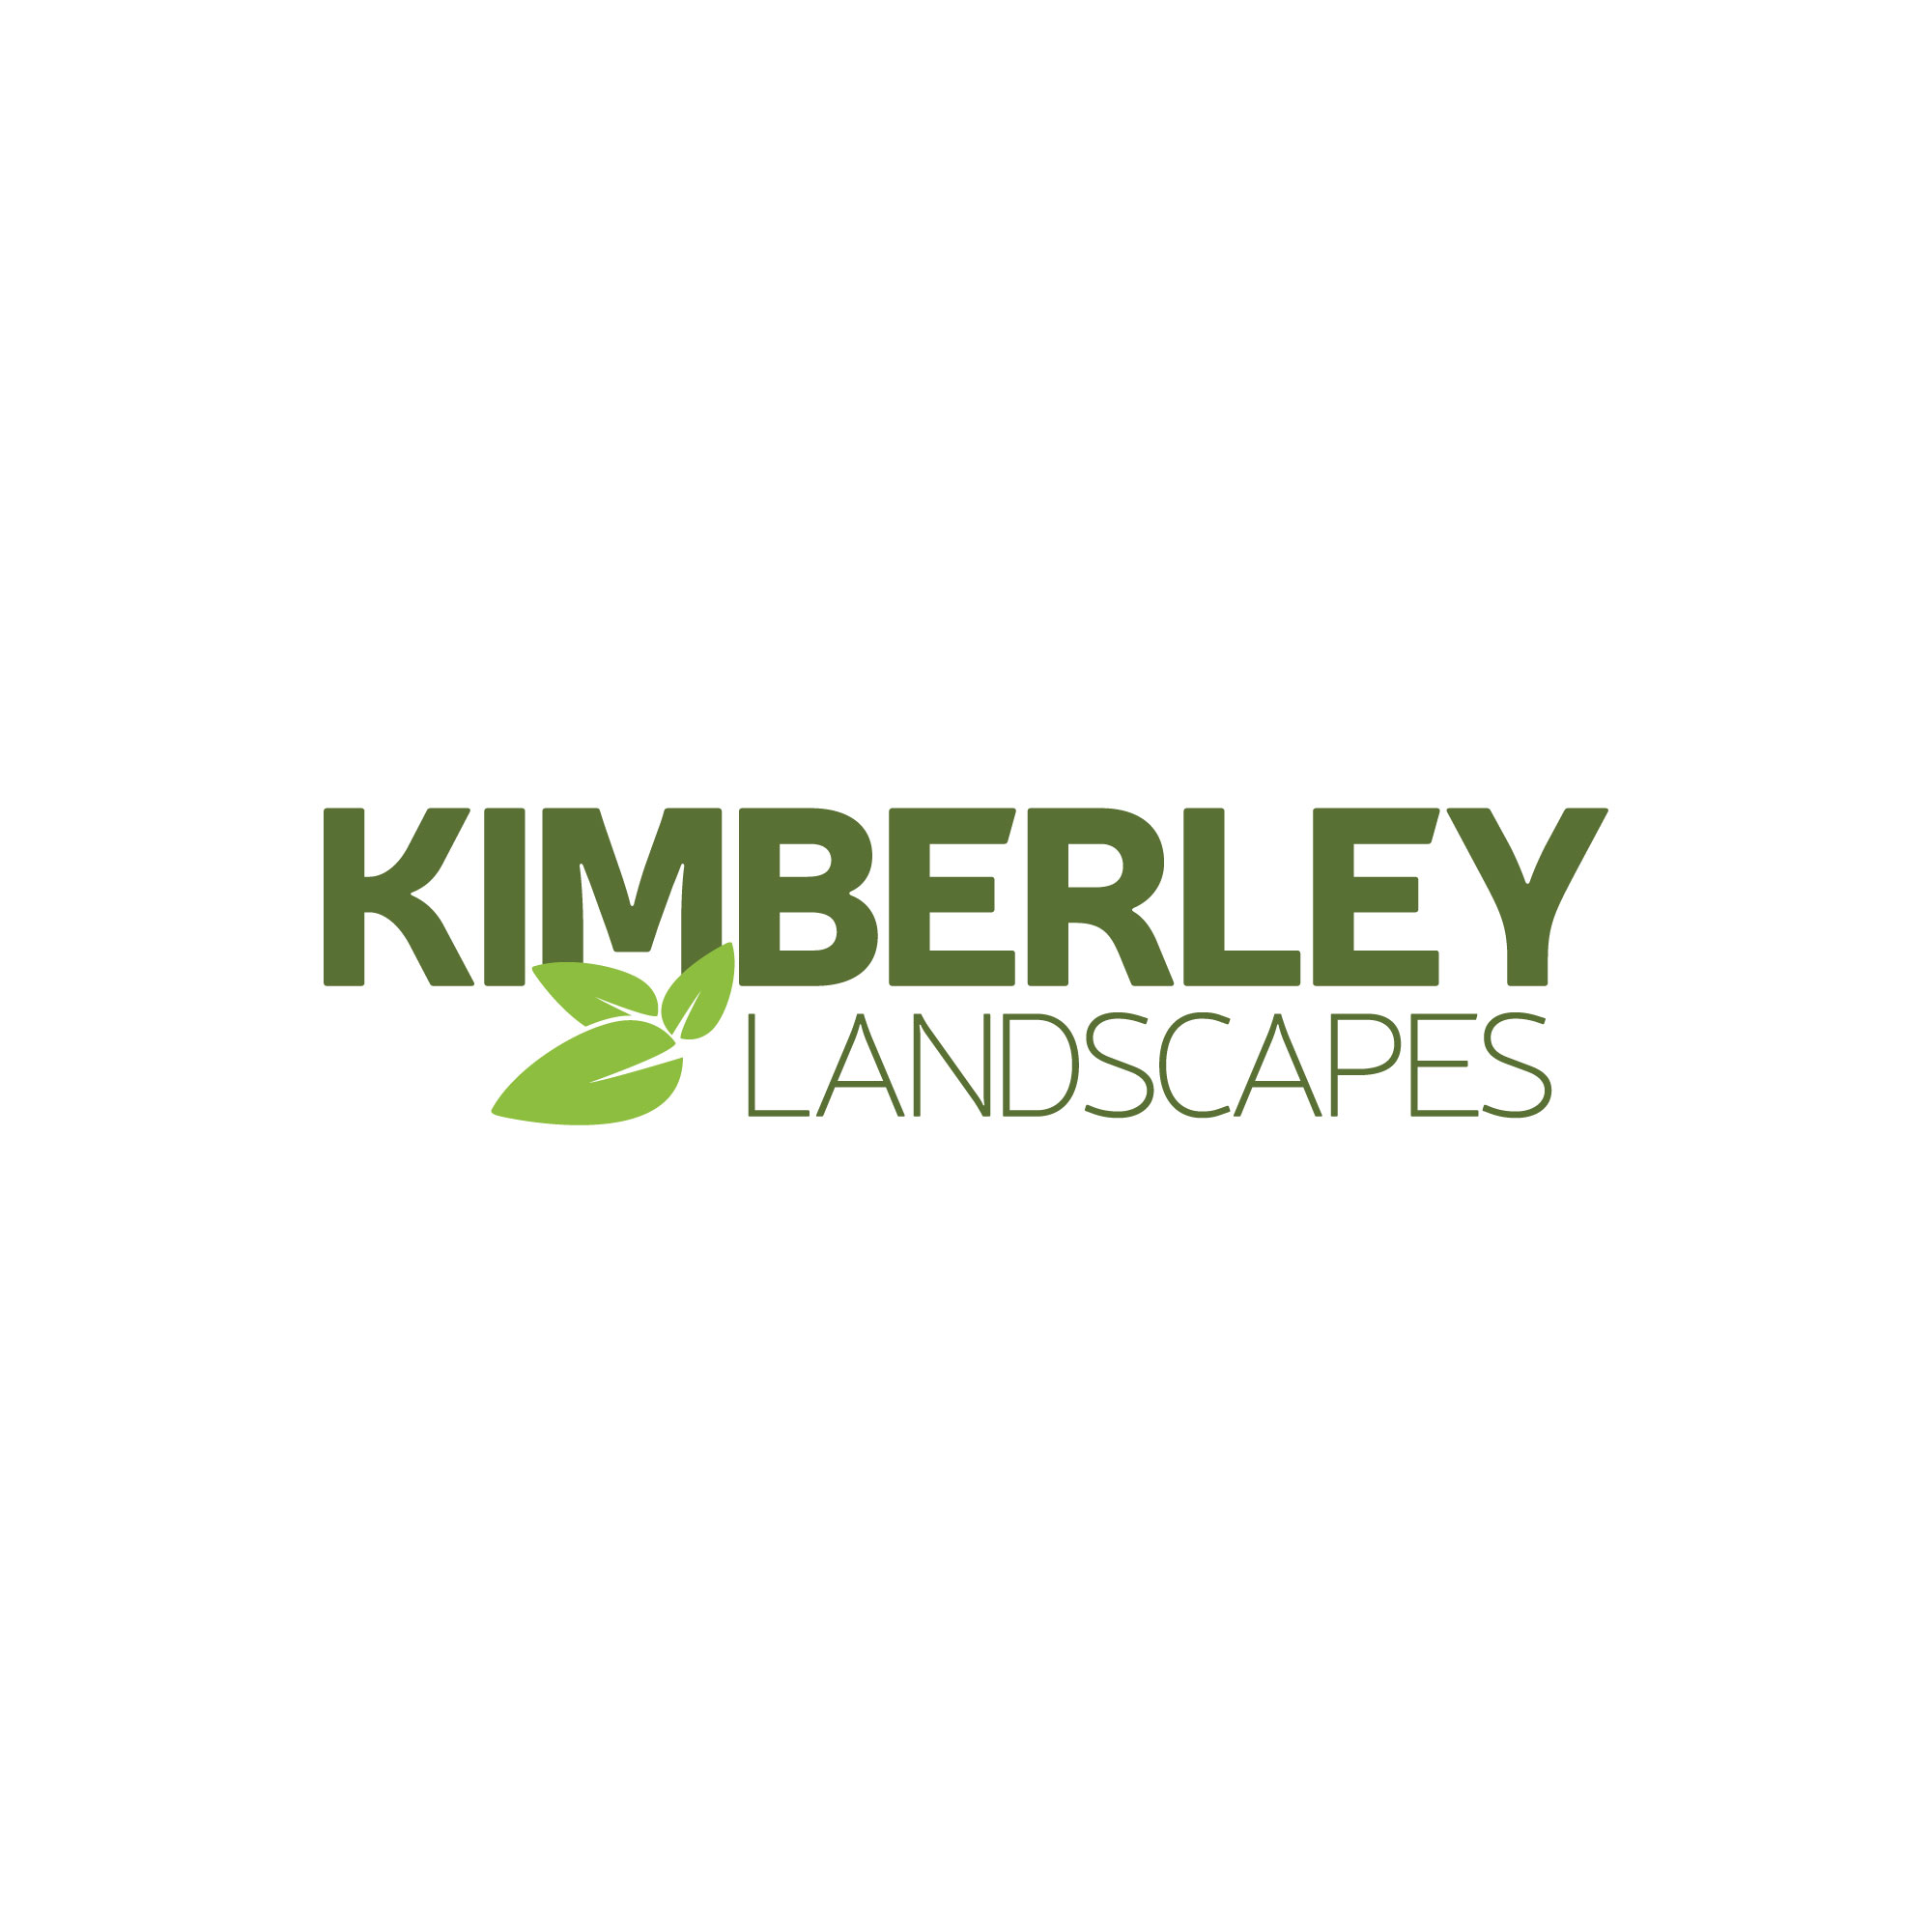 Kimberley Landscapes